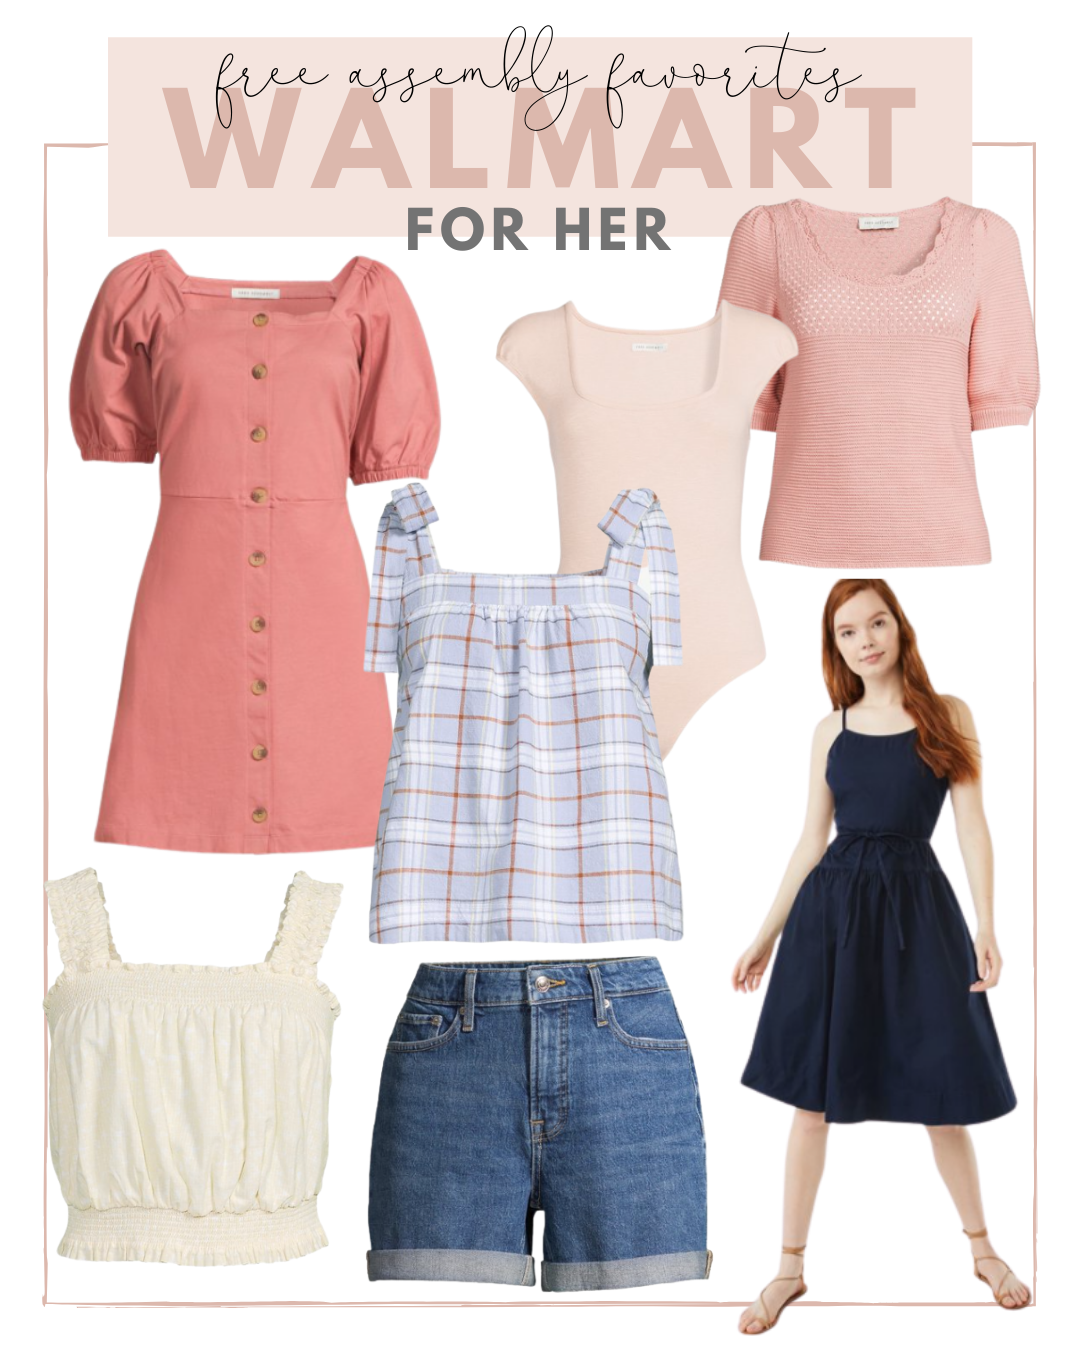 free assembly summer favorites for her